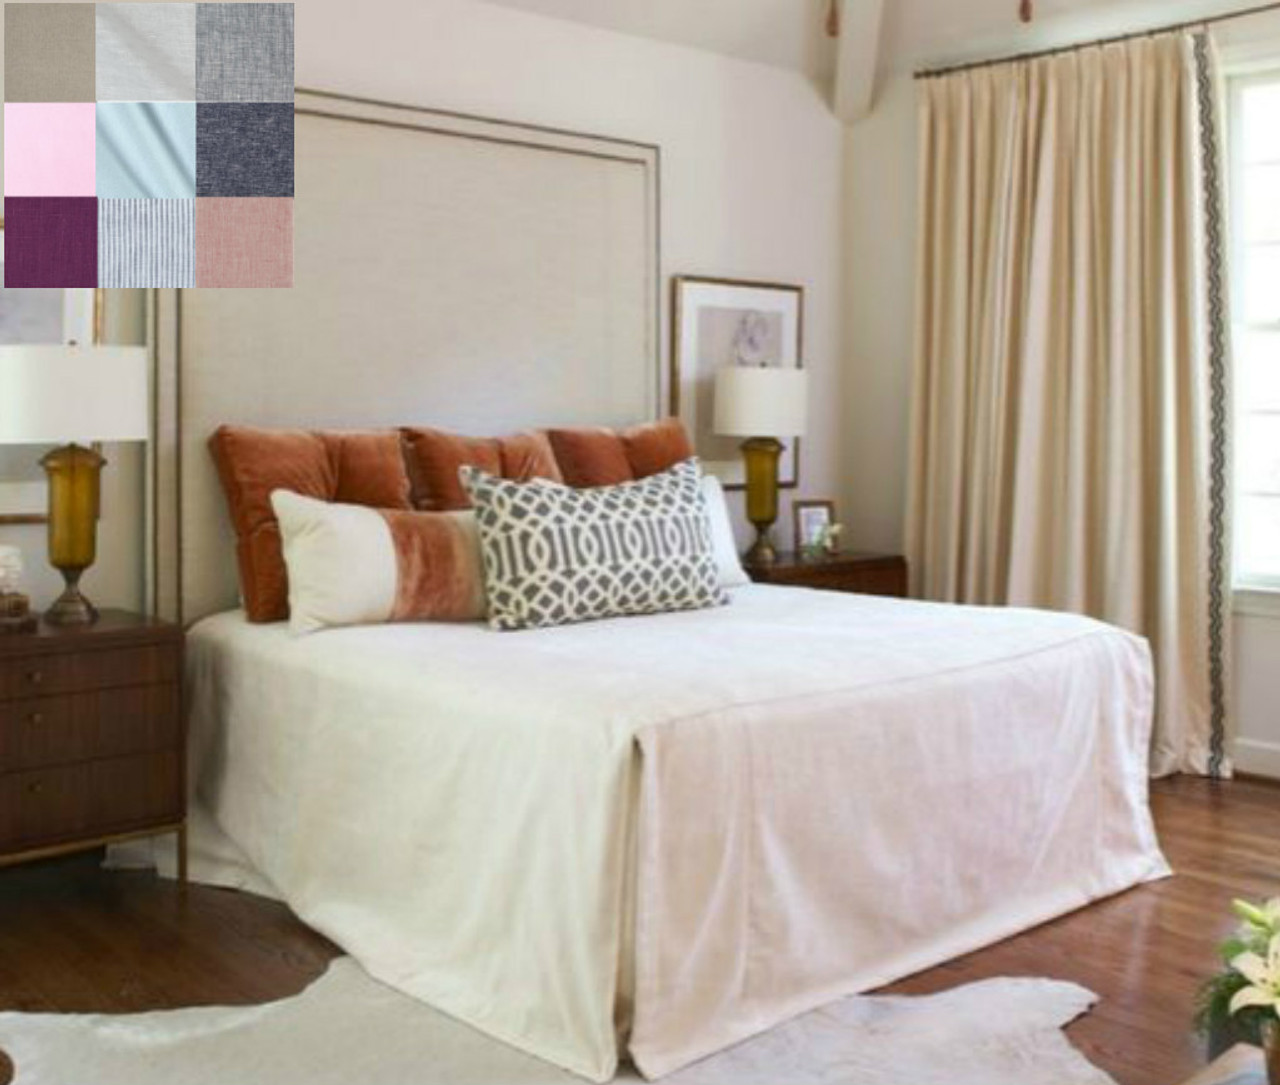 Linen Bed Cover - Pick your Color